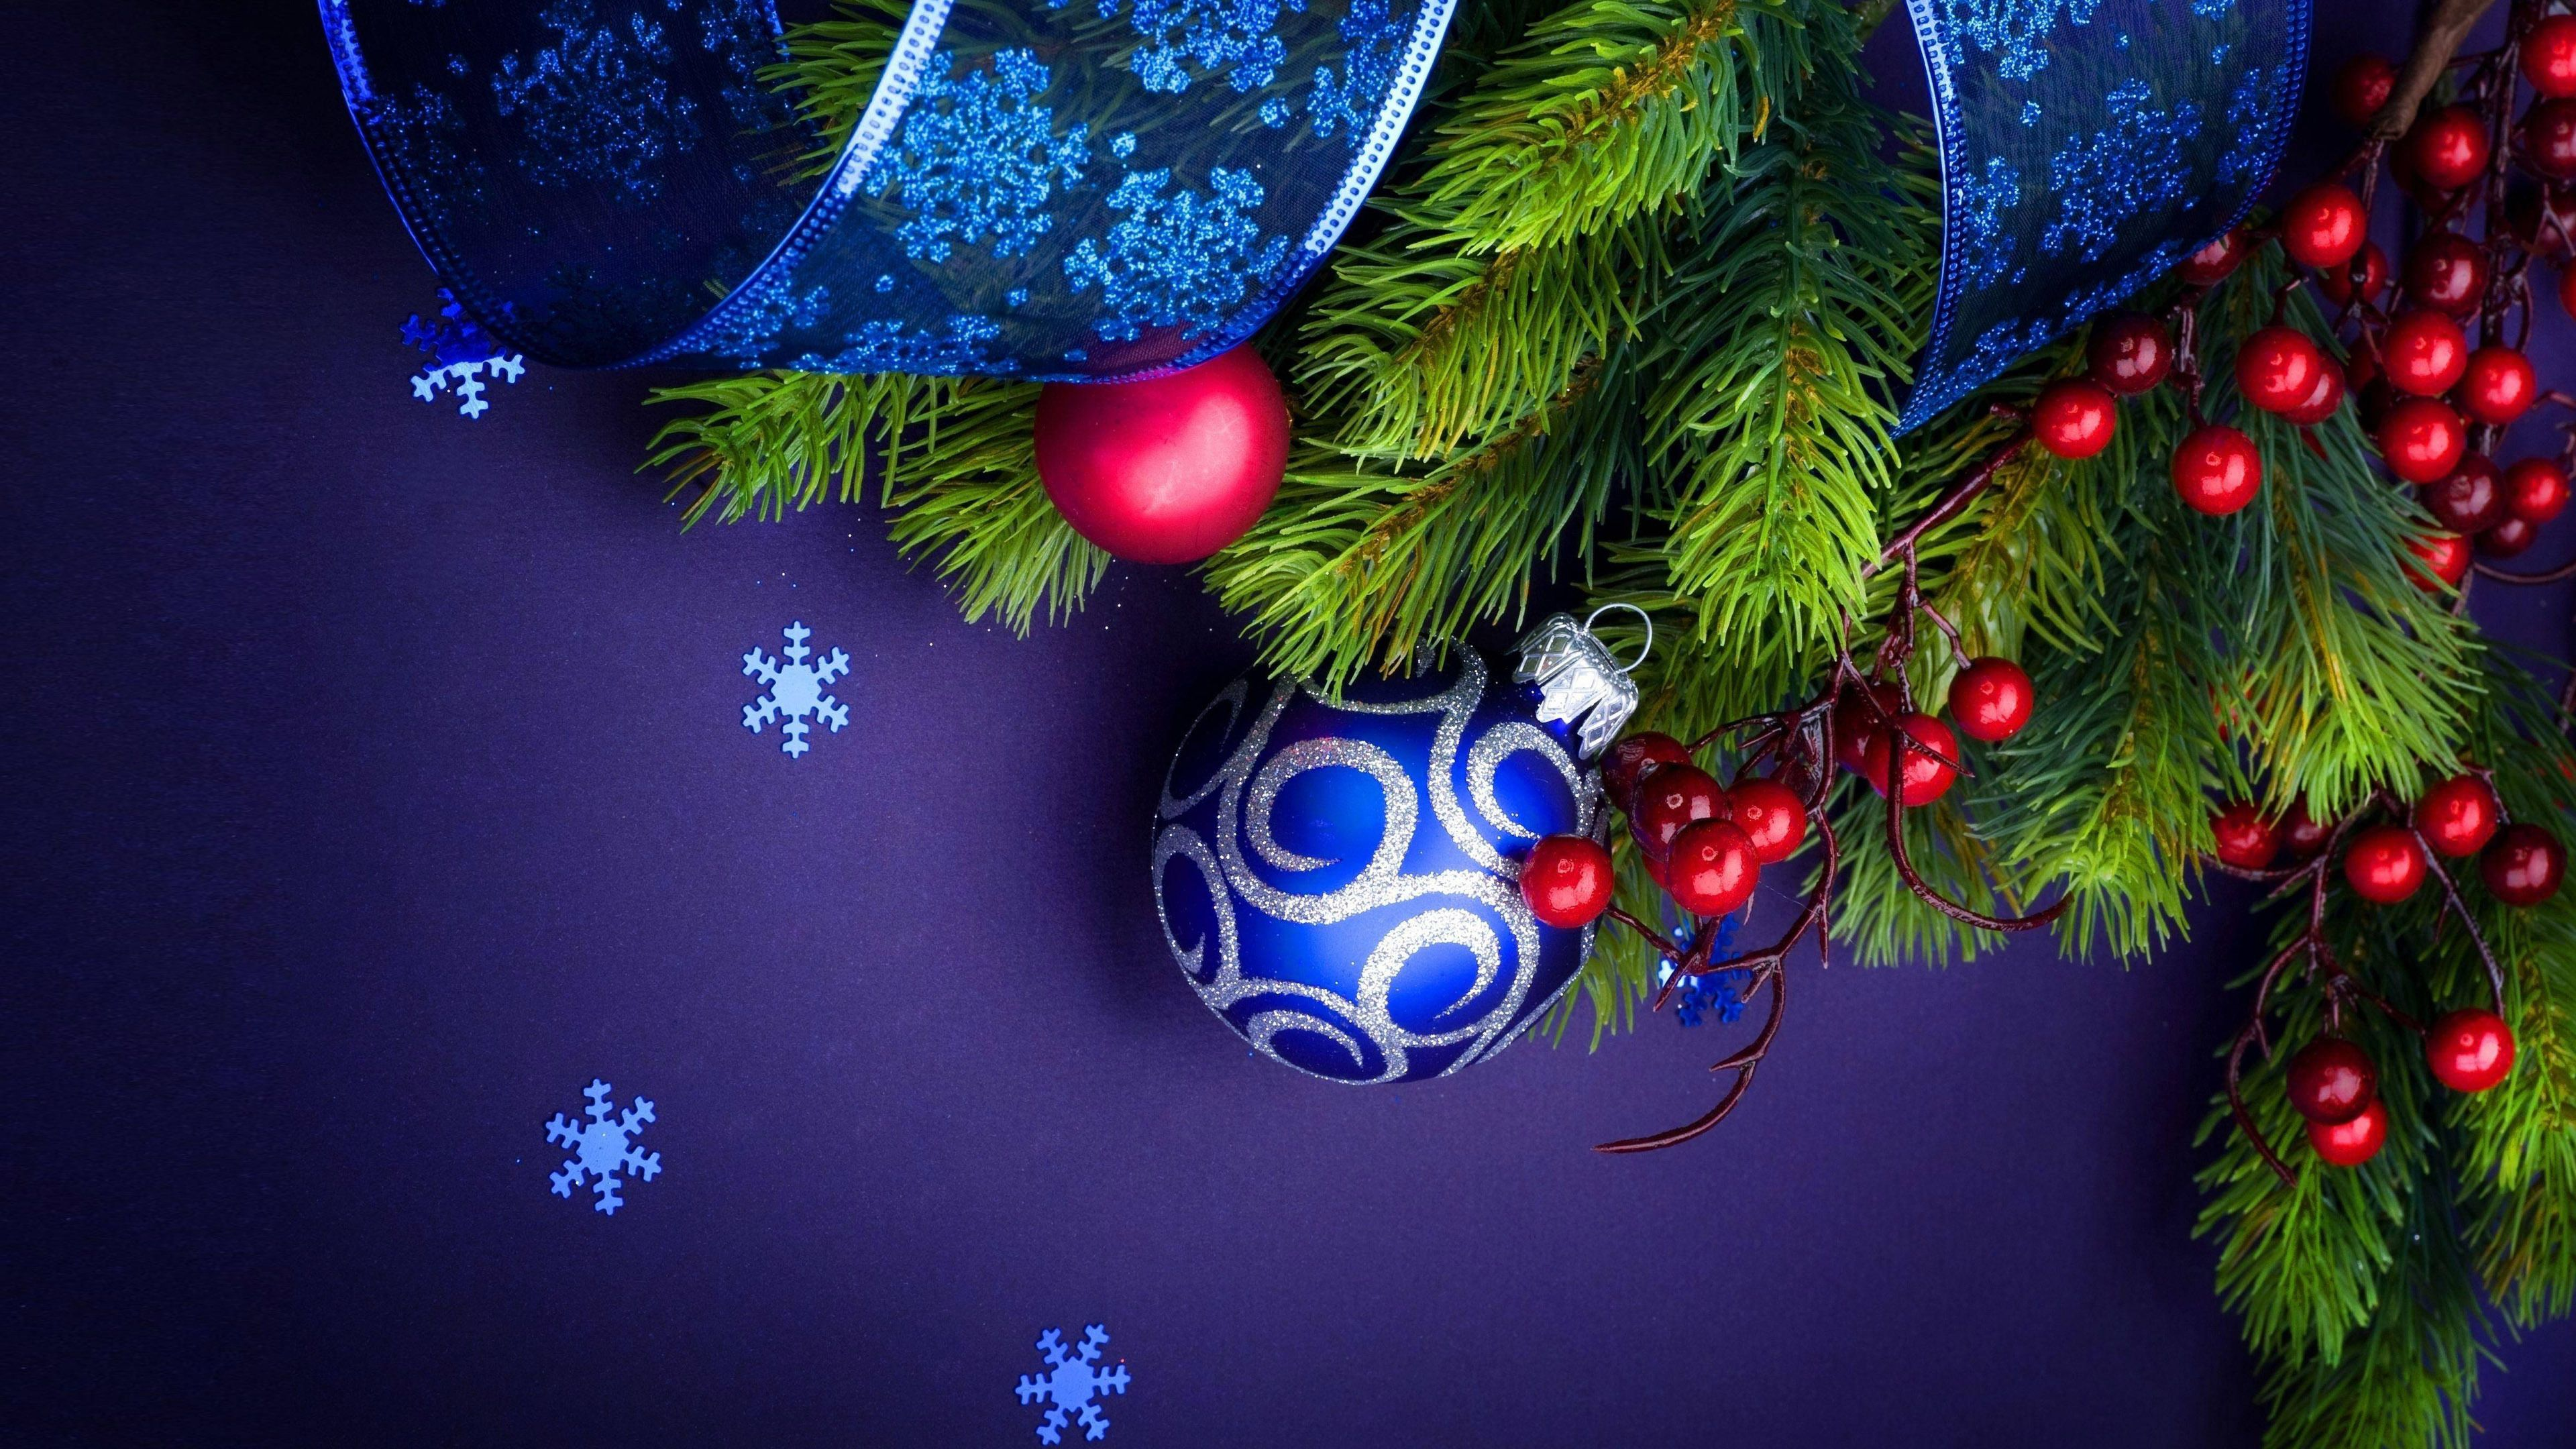 4k Christmas Ornaments Holidays Wallpapers Hd Wallpapers Christmas Wallpapers Celebrations Wa Christmas Wallpaper Christmas Desktop Christmas Tree Wallpaper